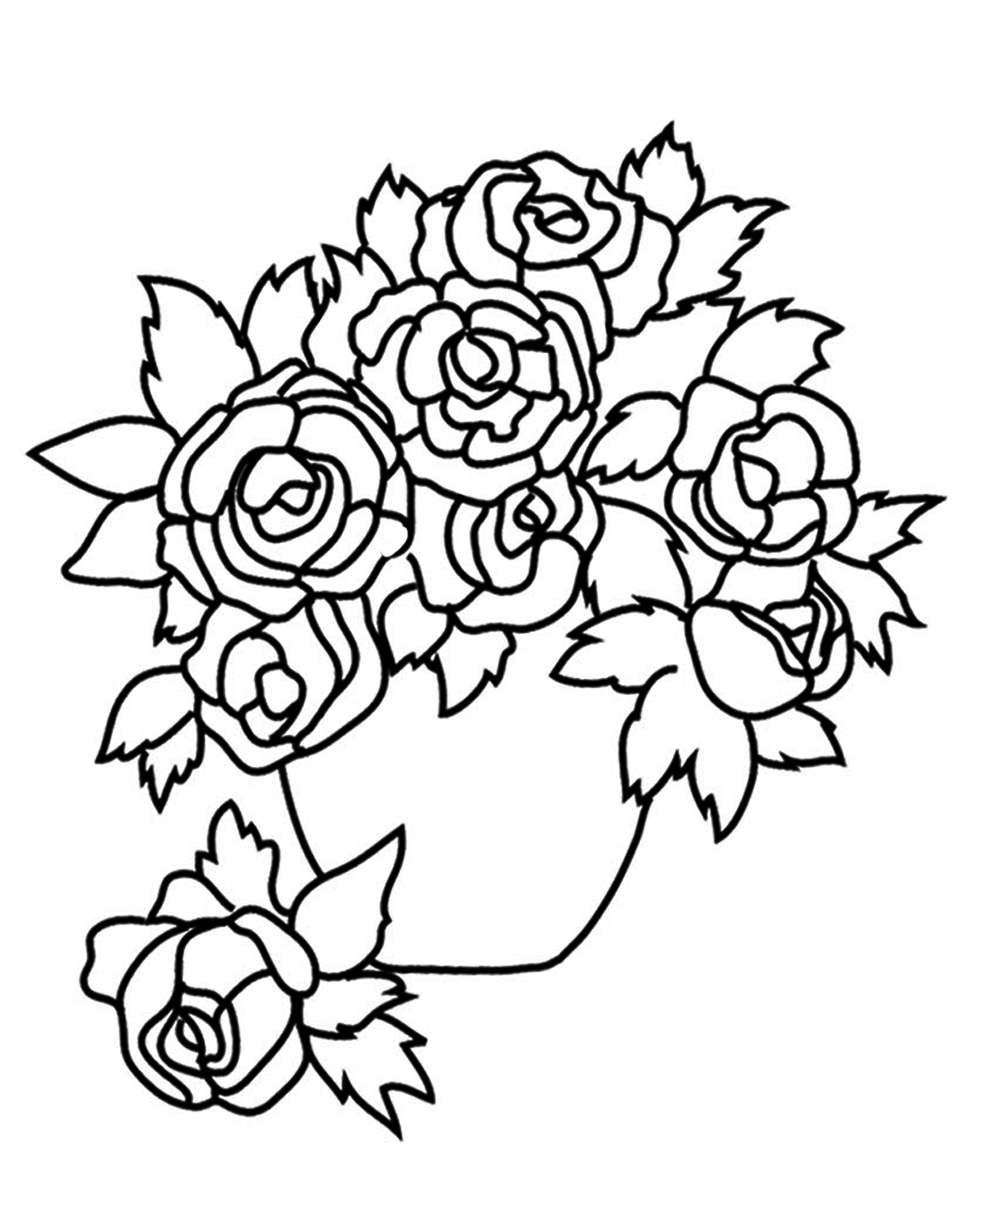 Flower vase drawing at getdrawings free for personal use 1004x1222 flower coloring pages izmirmasajfo Choice Image